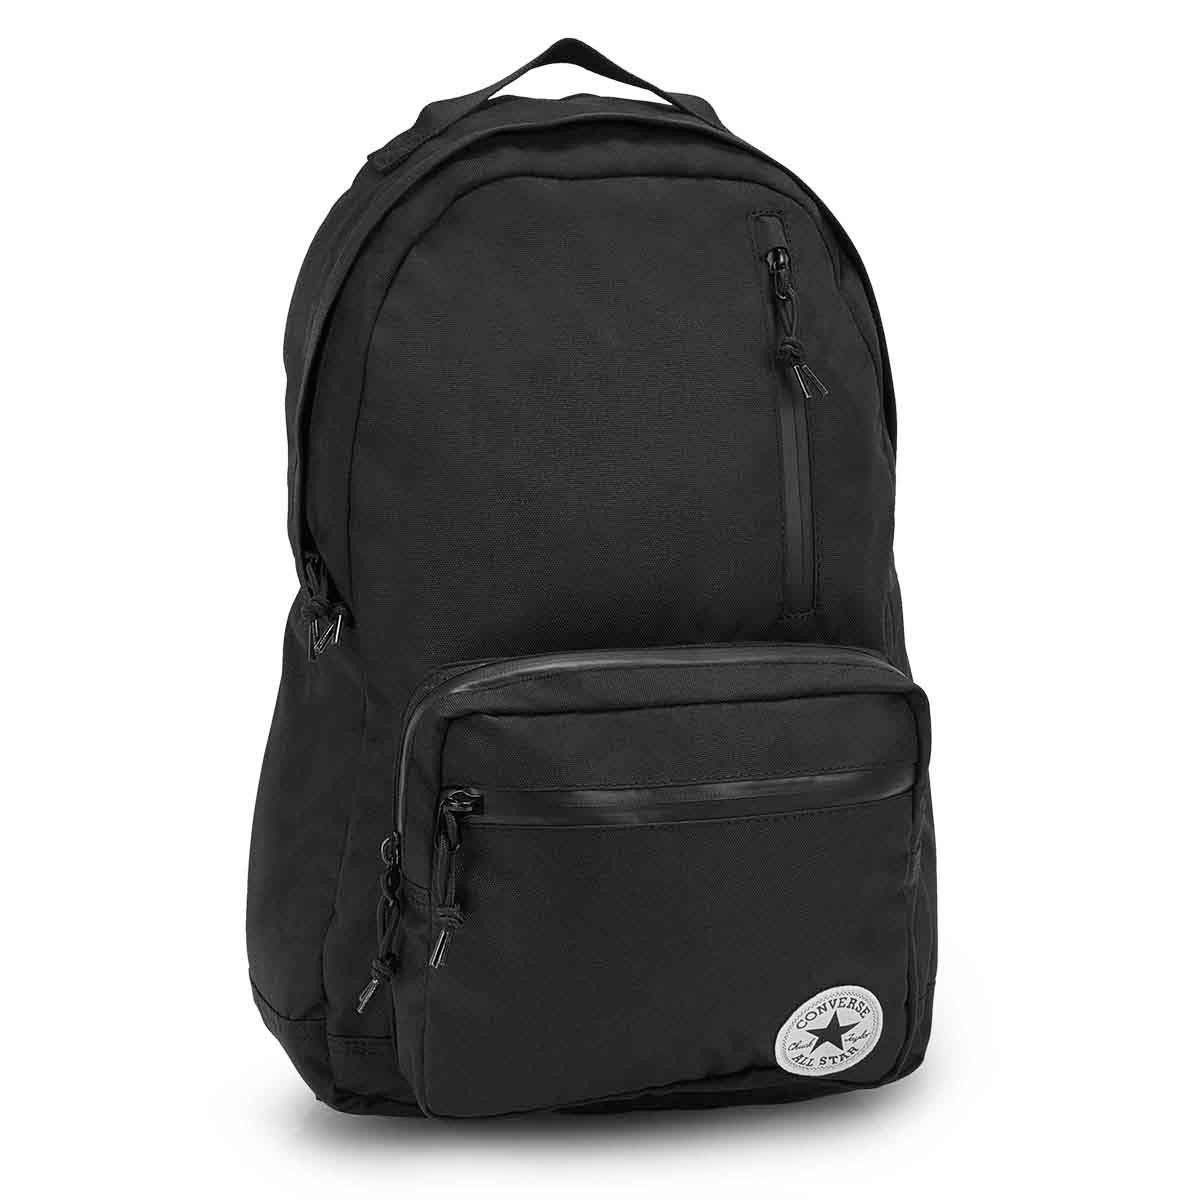 Unisex POLY GO black backpack